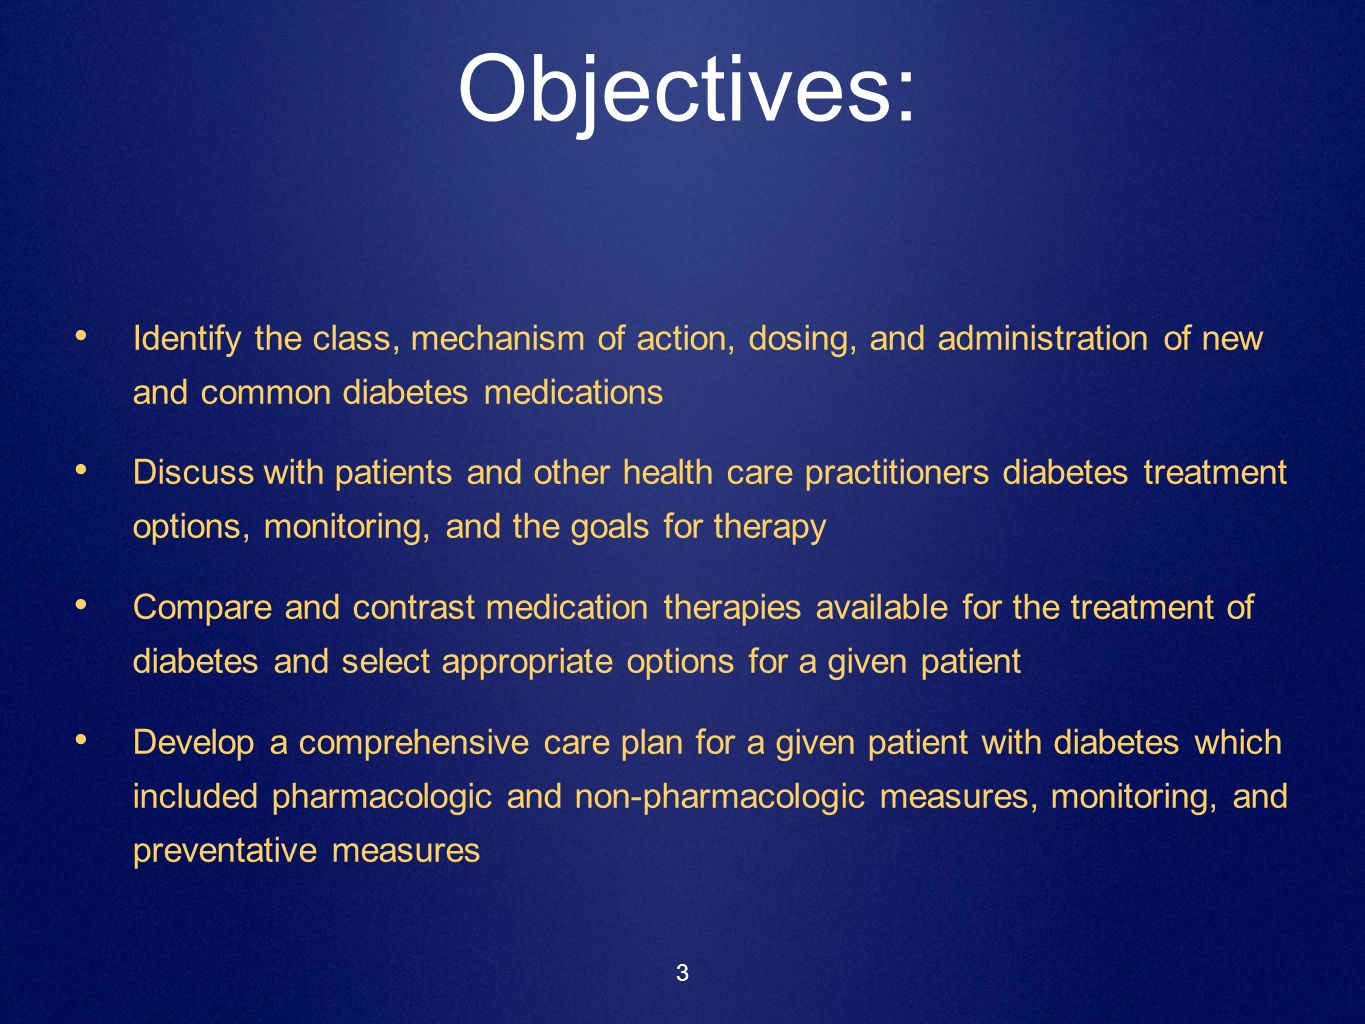 Objectives: Identify the class, mechanism of action, dosing, and administration of new and common diabetes medications.